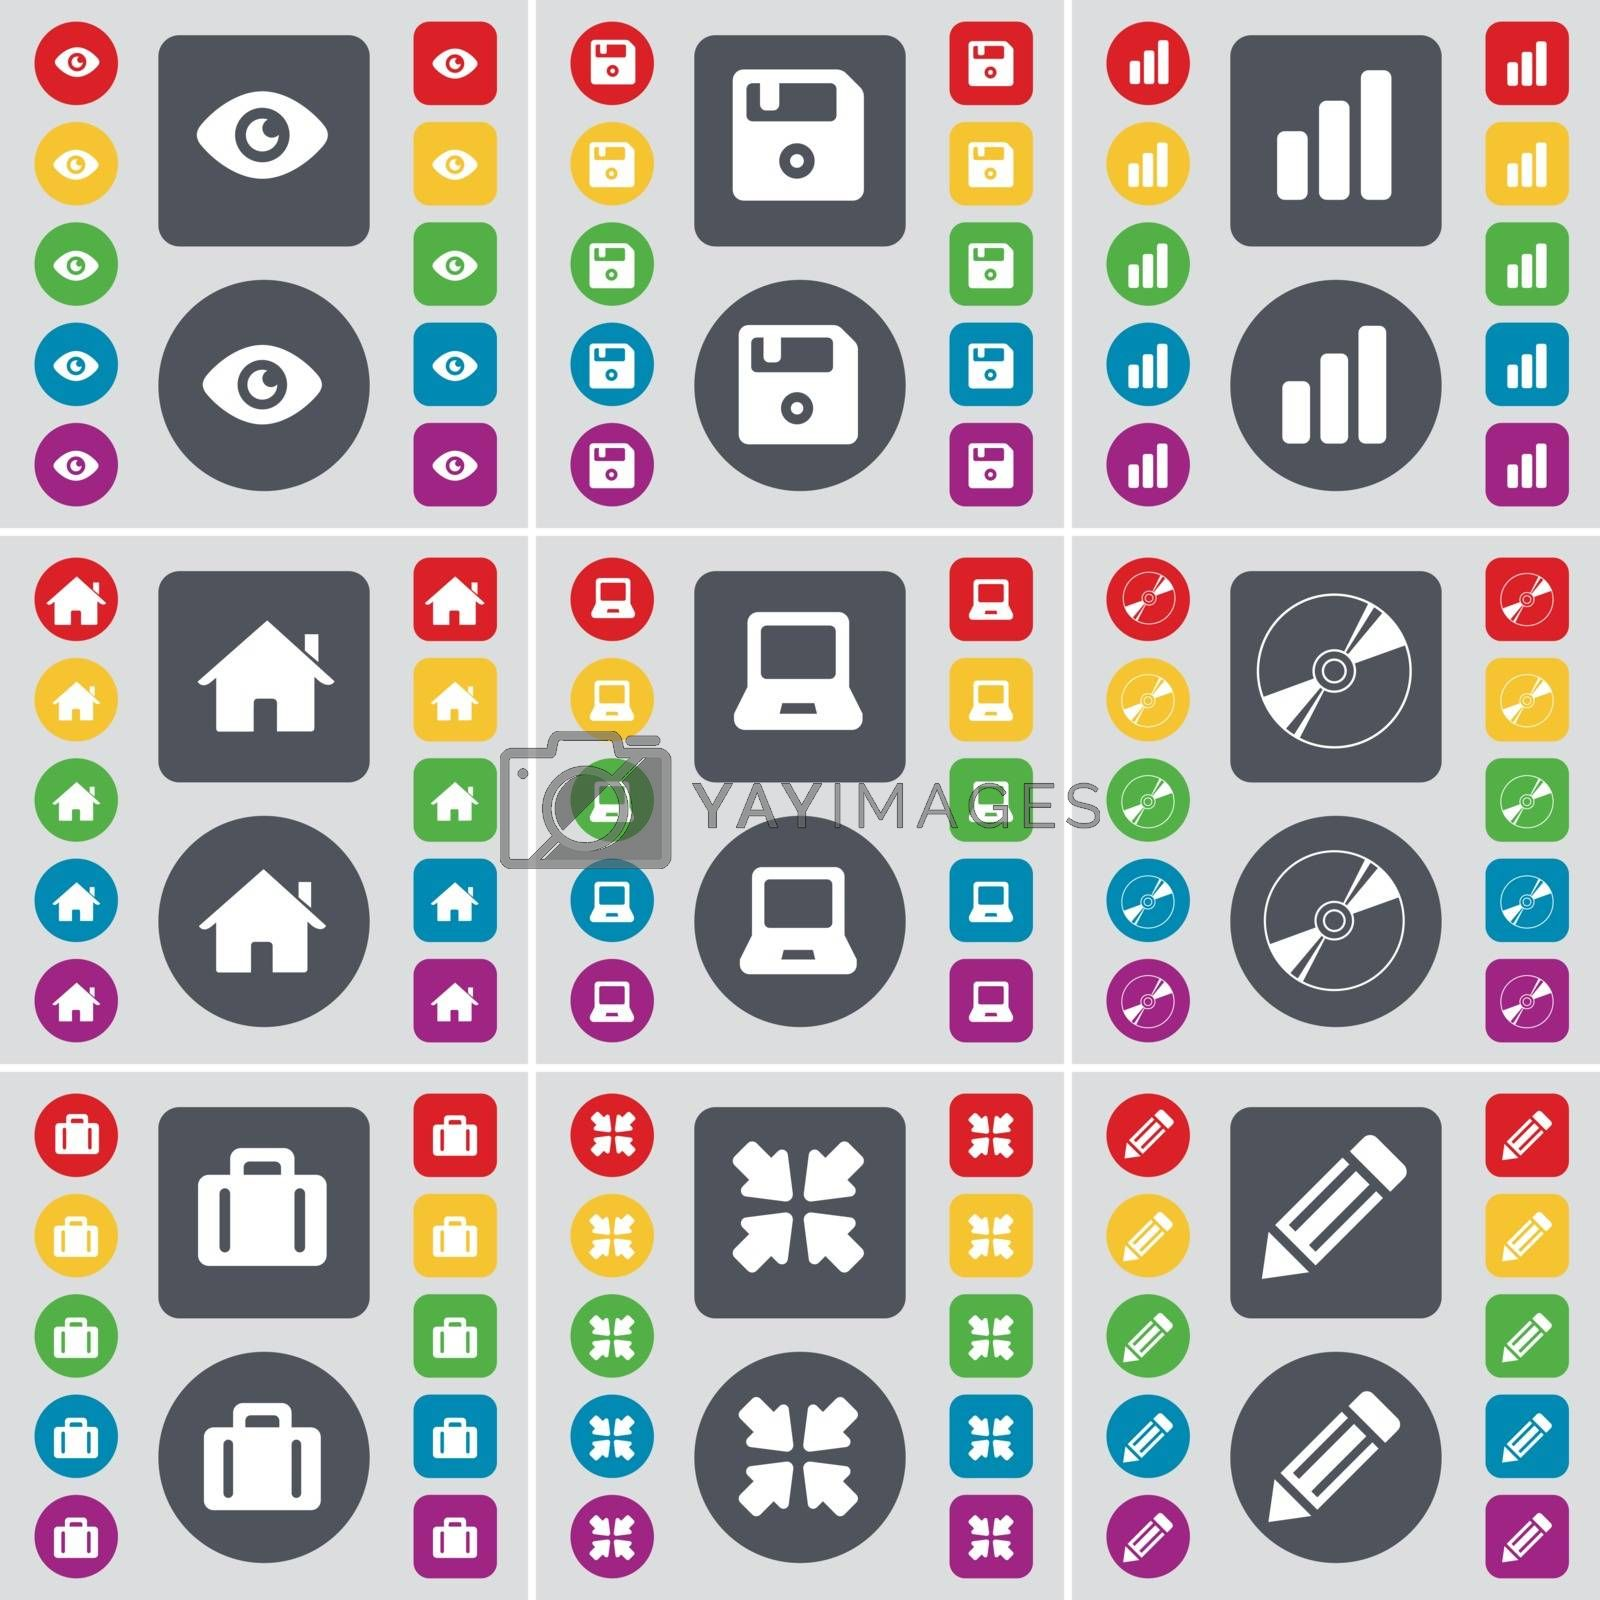 Vision, Floppy disk, Diagram, House, Laptop, DVD, Suicase, Deploying screen, Pencil icon symbol. A large set of flat, colored buttons for your design. Vector by serhii_lohvyniuk